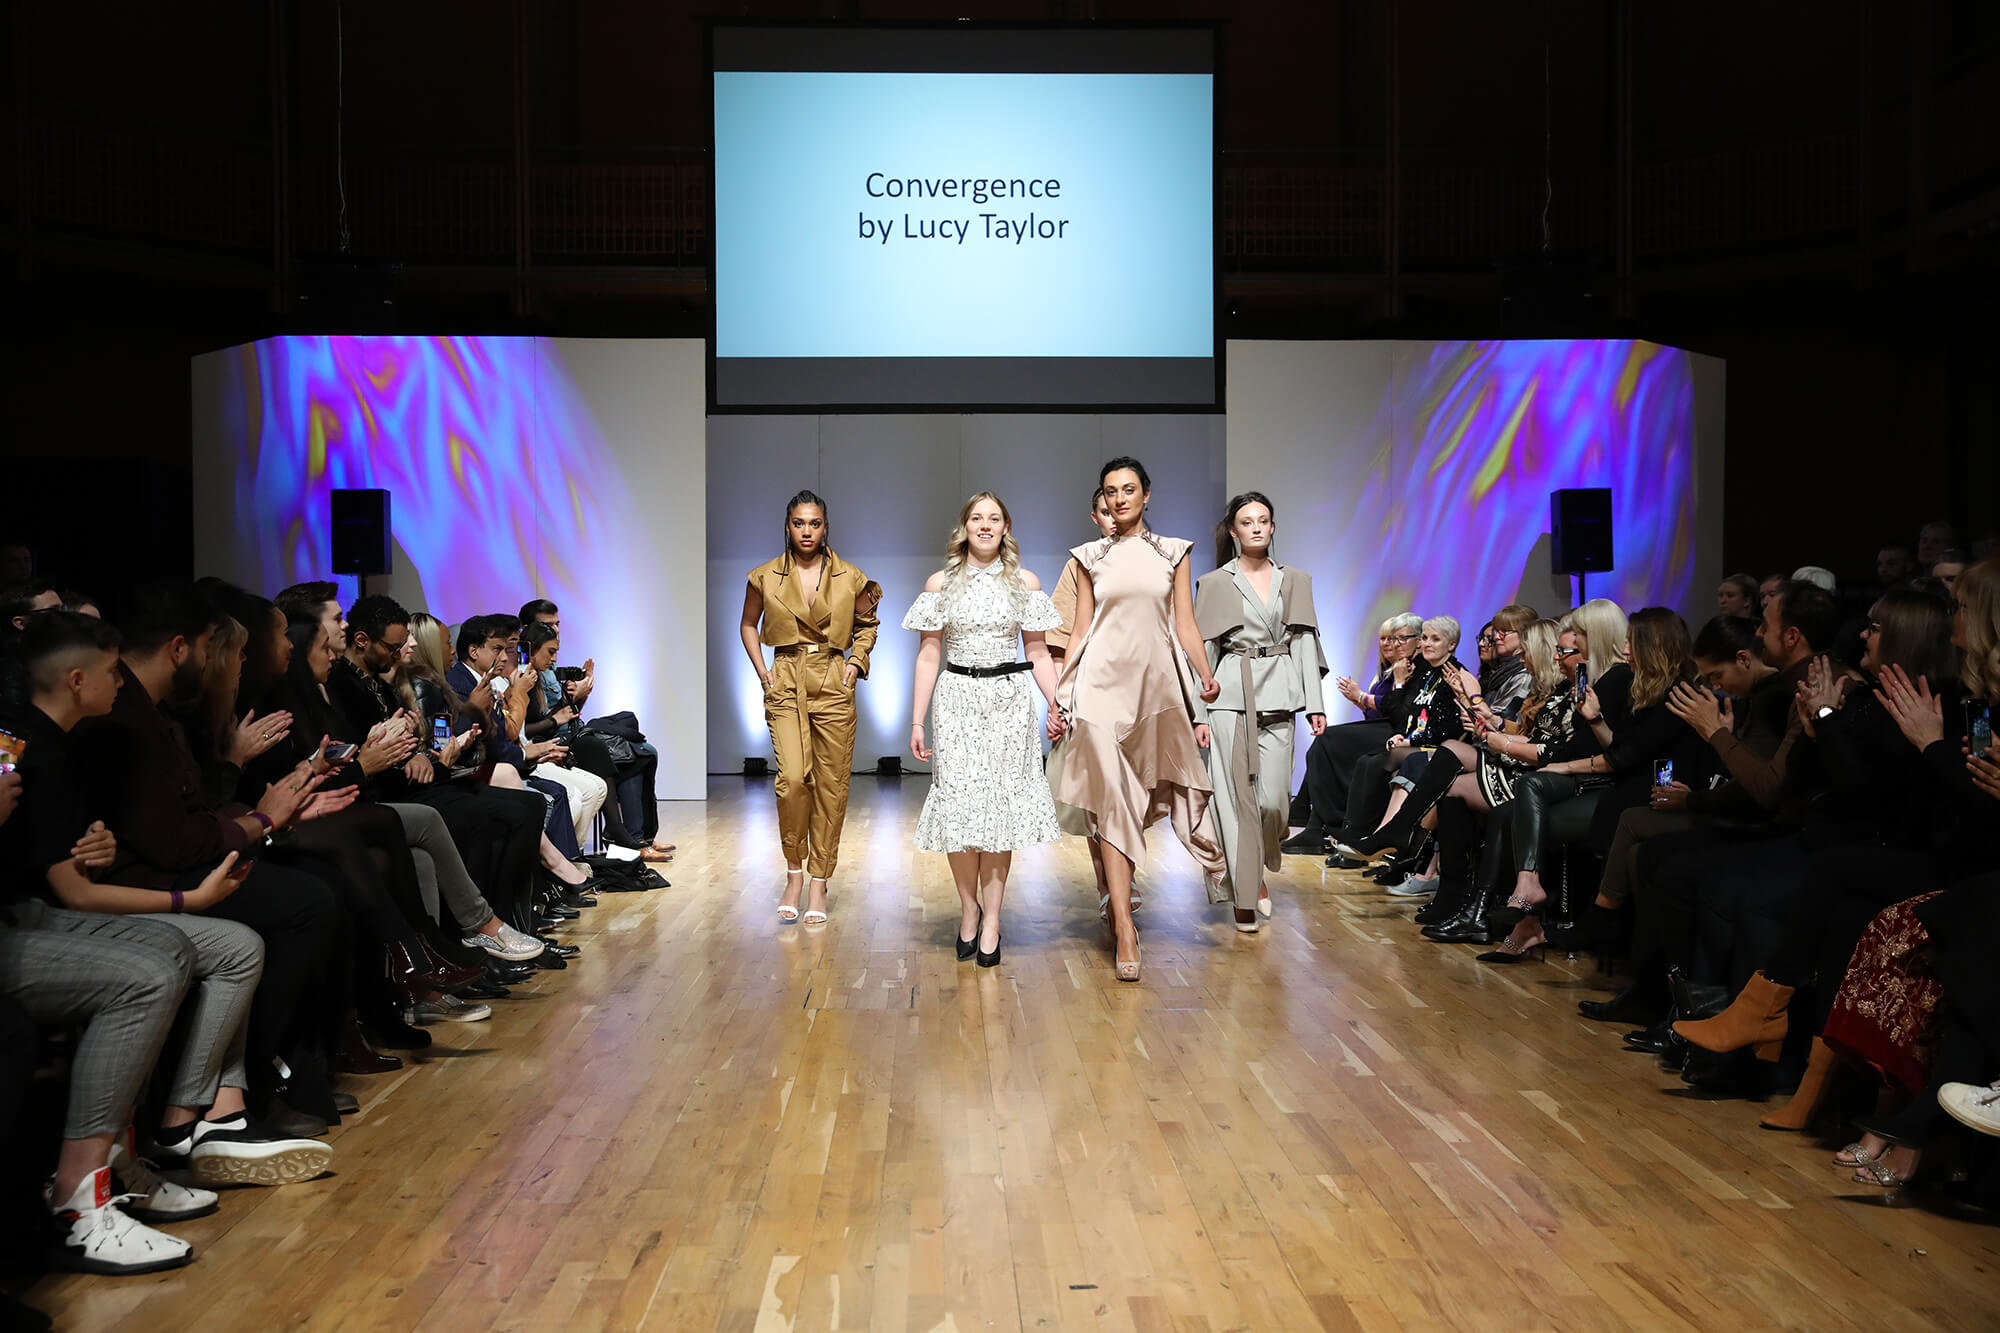 Lucy Taylor walking down a runway with models wearing clothing from 'Convergence', Lucy's winning collection at the Midlands Fashion Awards